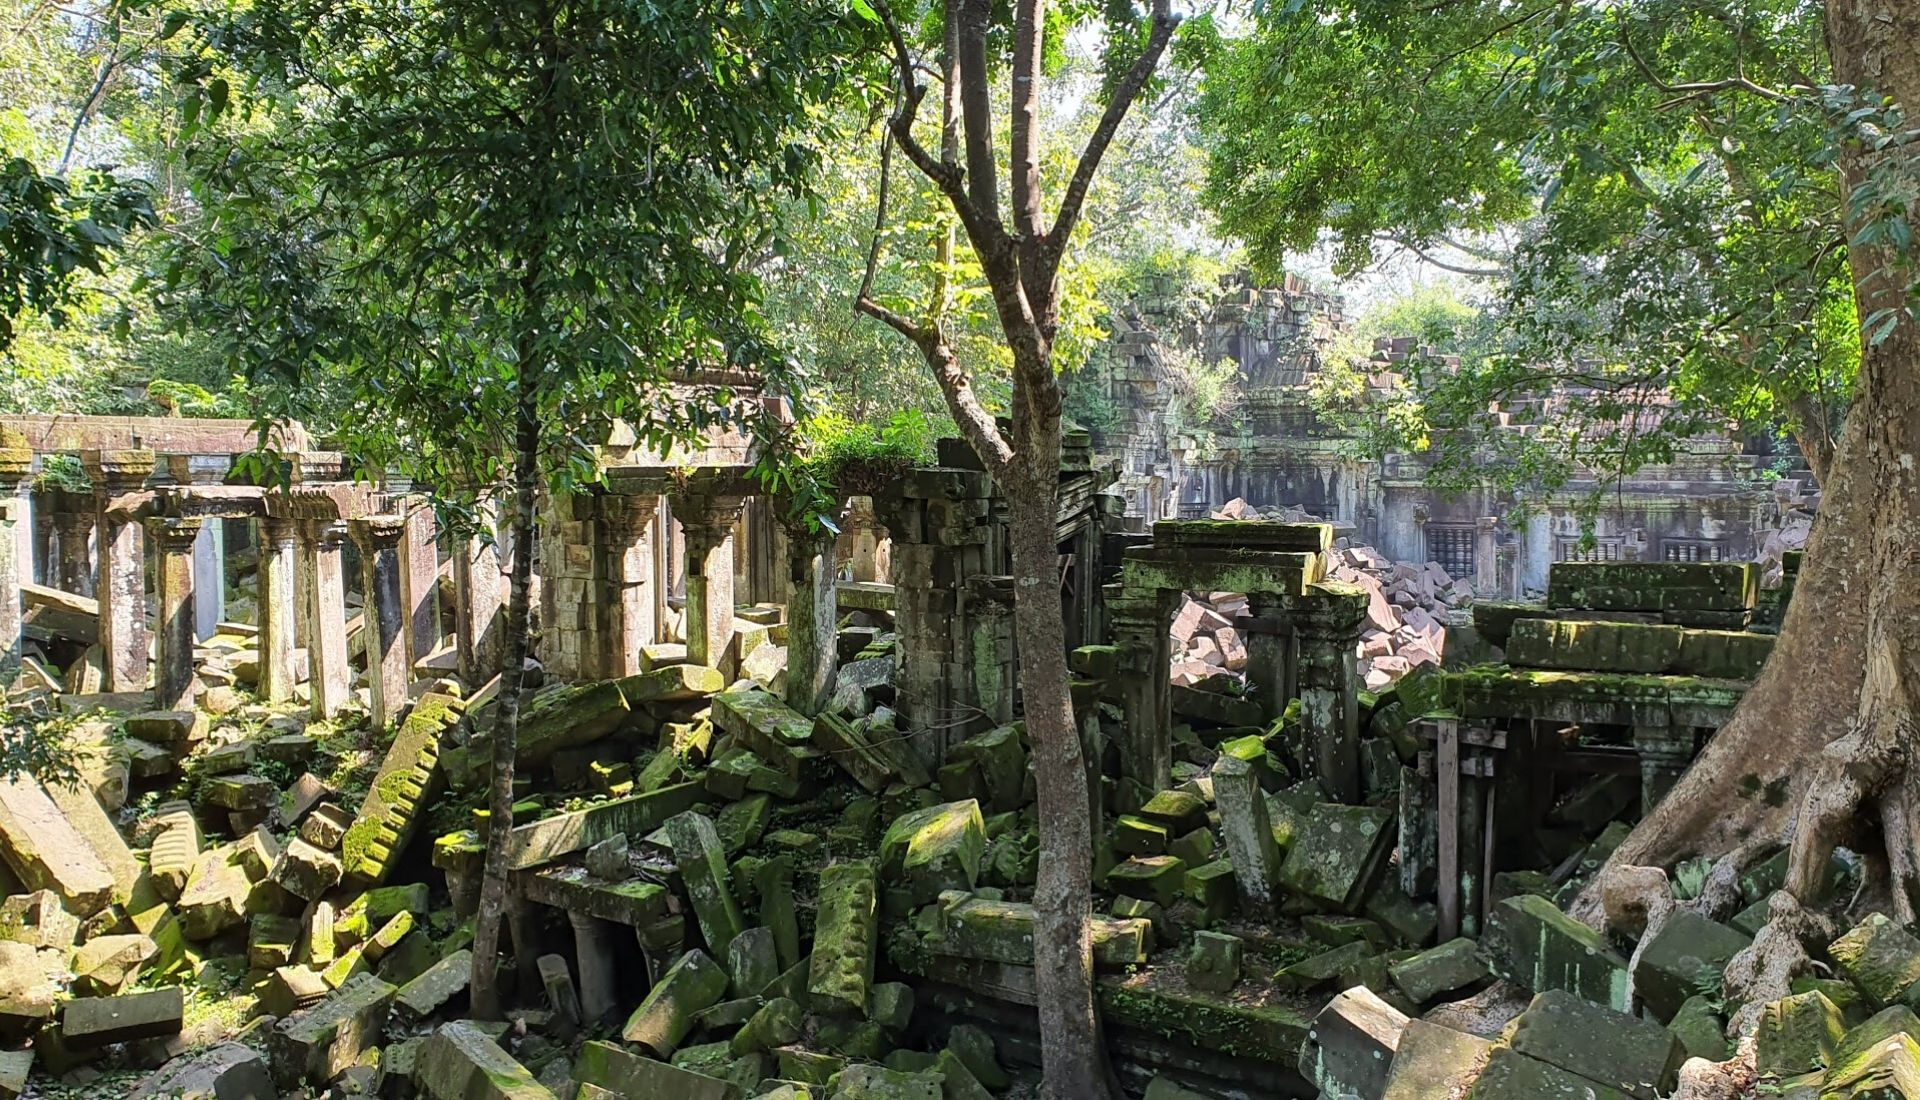 The ruins of Beng Mealea at Angkor Wat